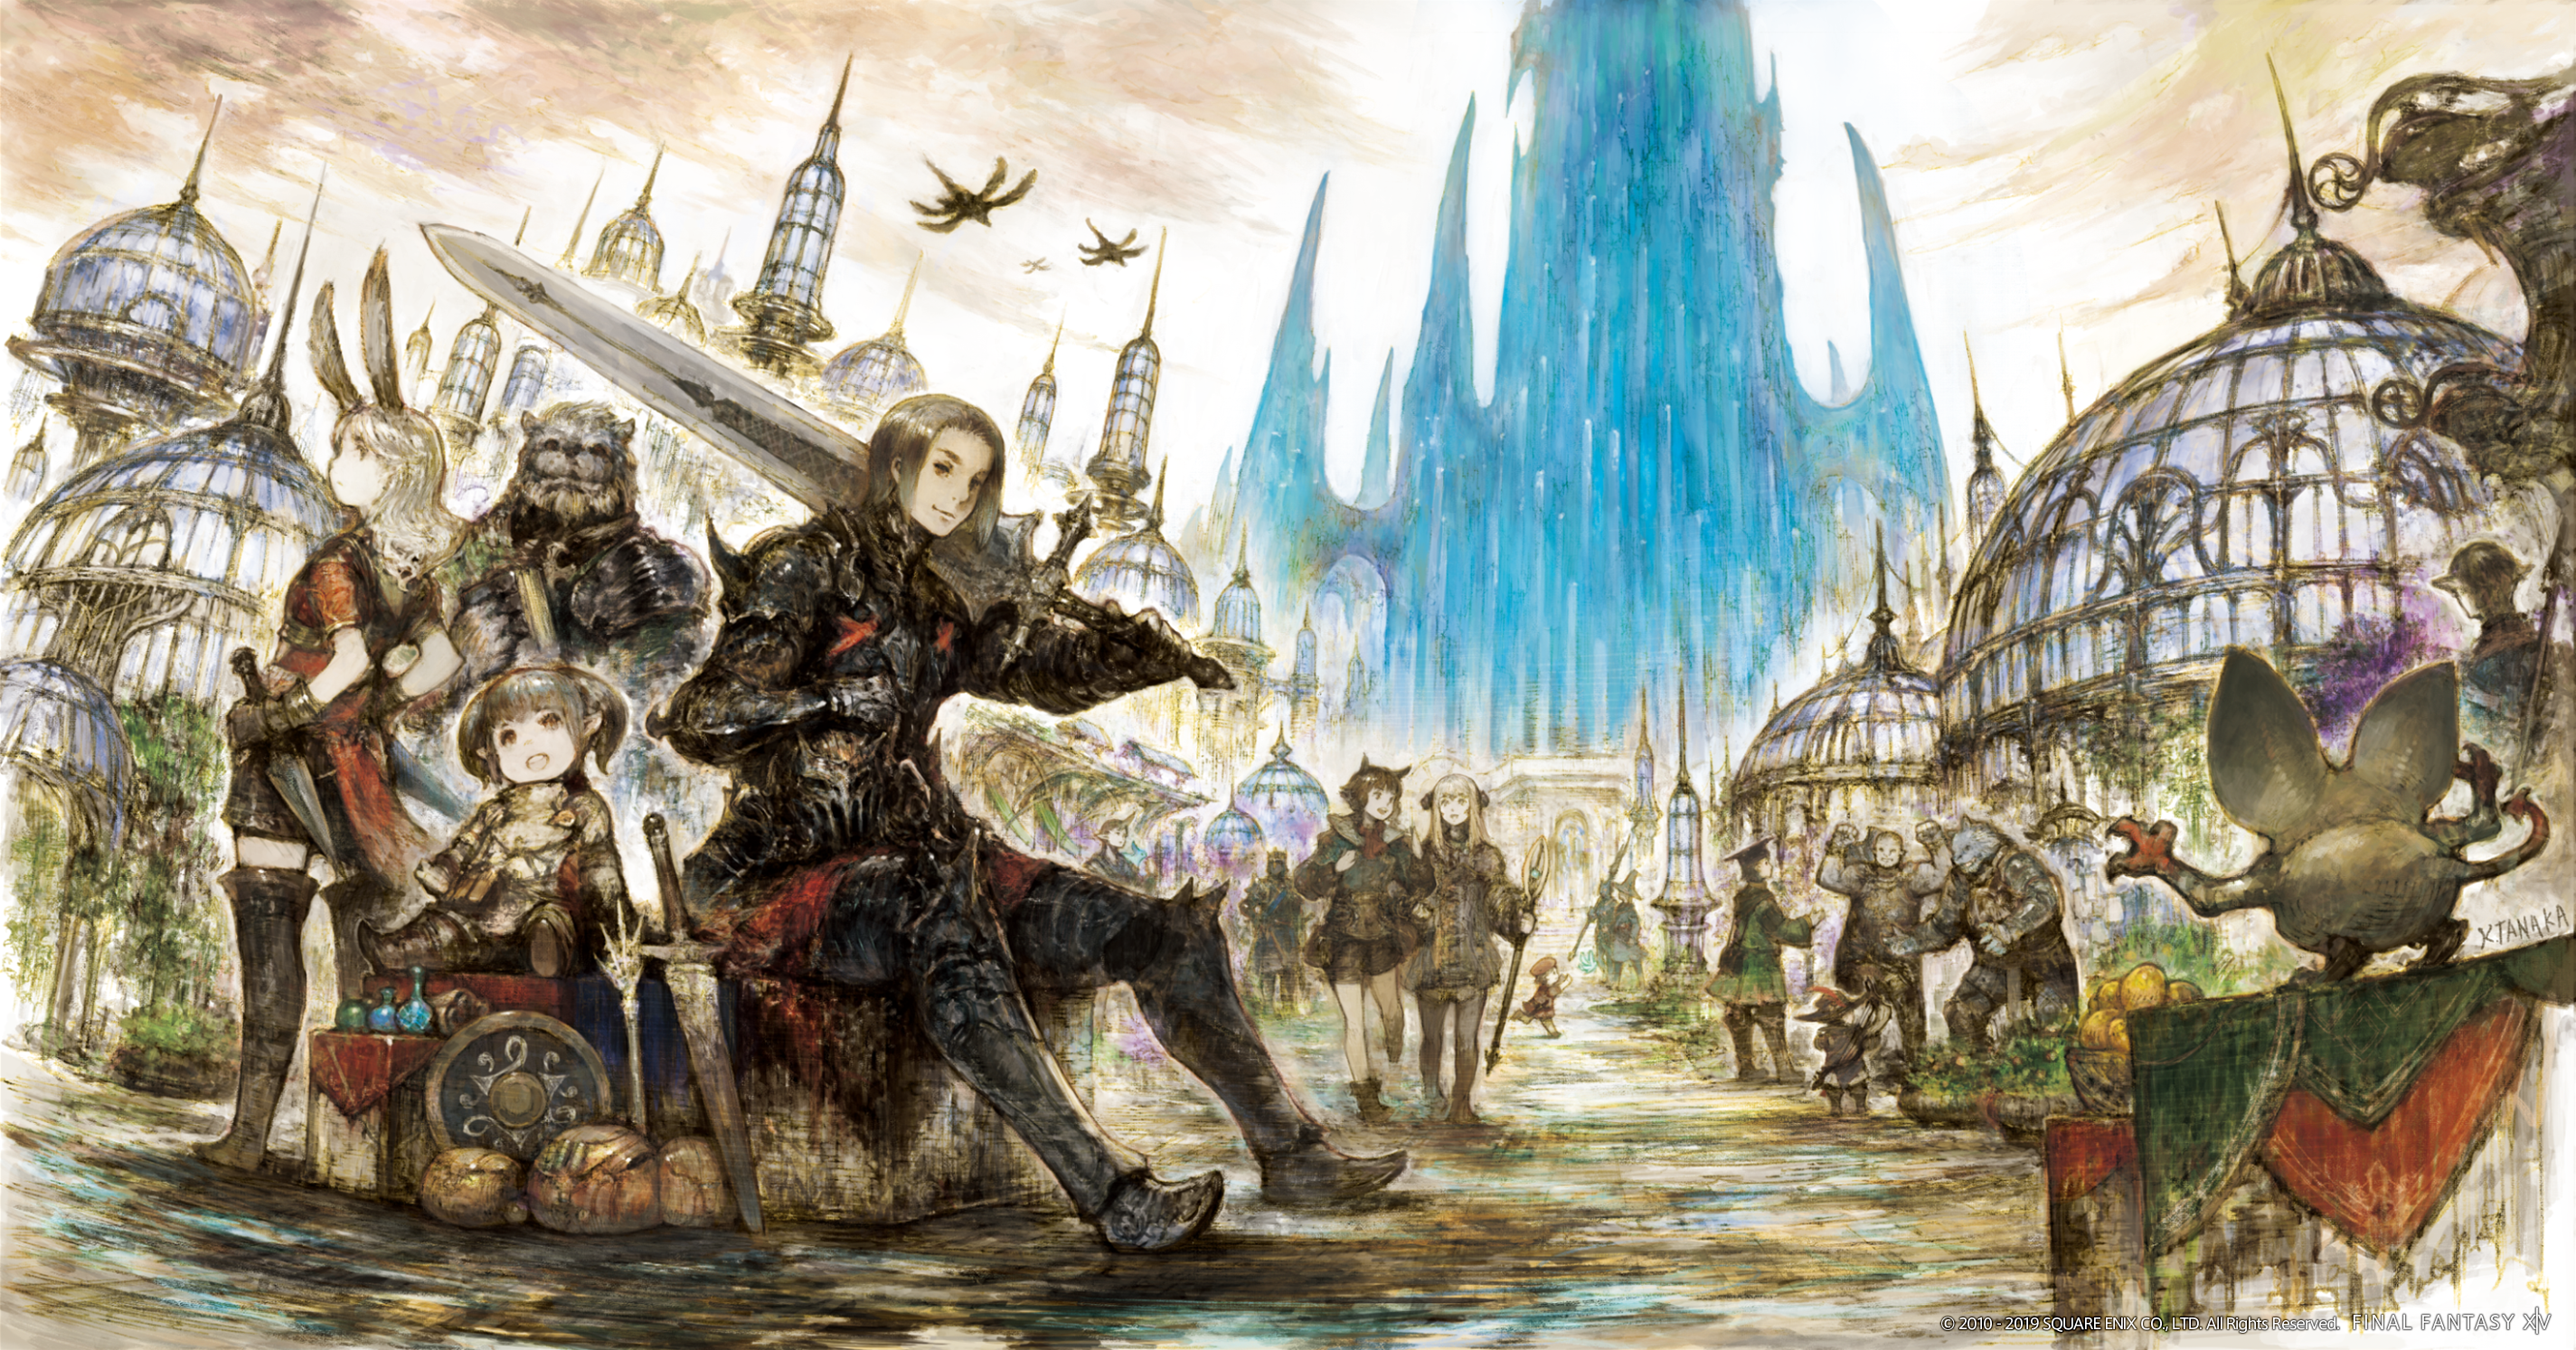 Final Fantasy Xiv Shadowbringer Wallpaper Final Fantasy Xiv